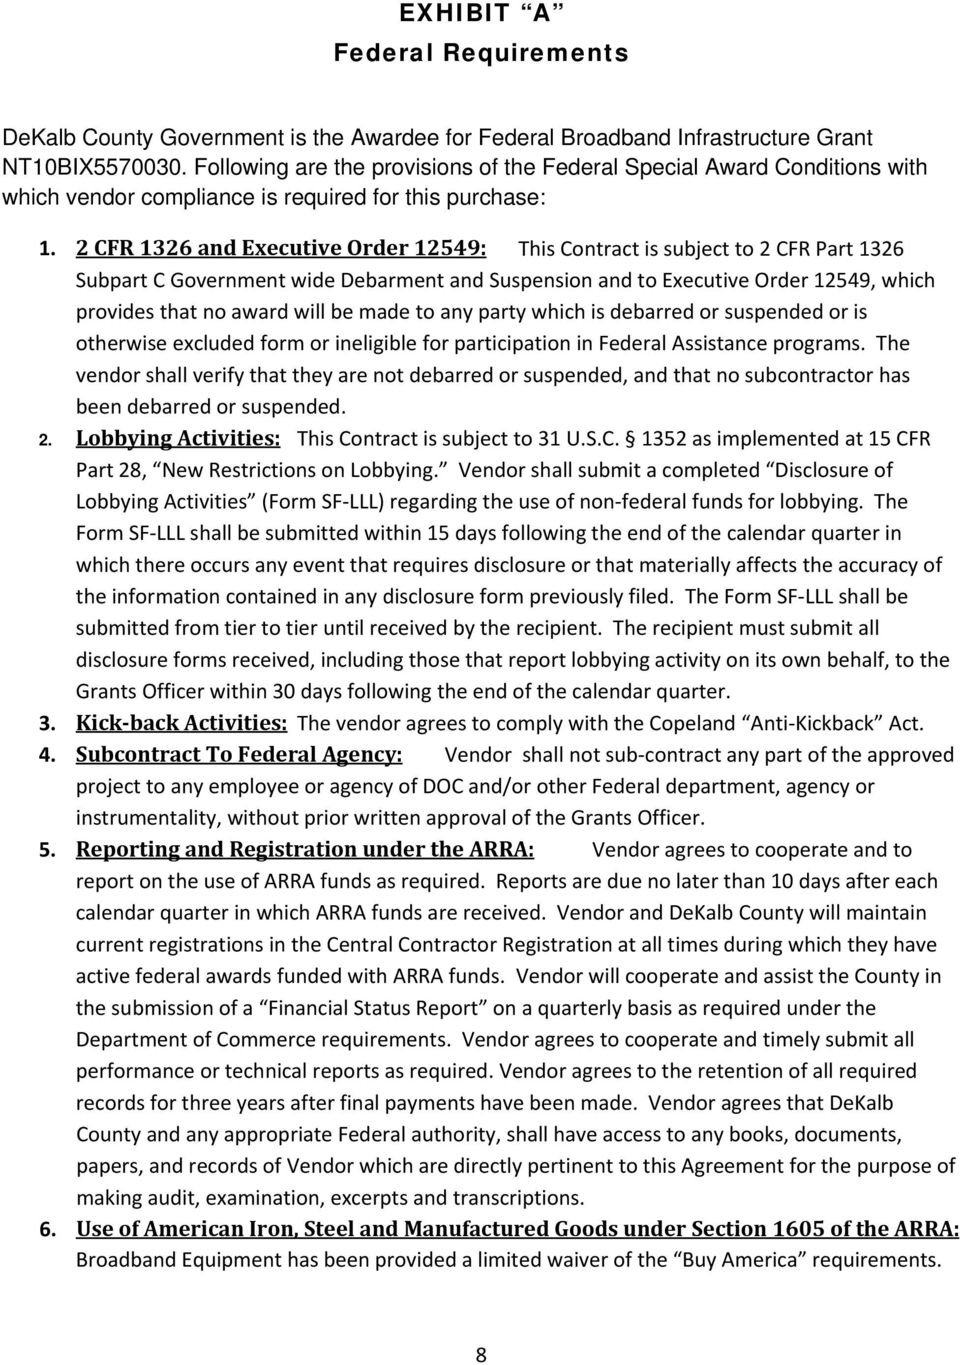 2 CFR 1326 and Executive Order 12549: This Contract is subject to 2 CFR Part 1326 Subpart C Government wide Debarment and Suspension and to Executive Order 12549, which provides that no award will be